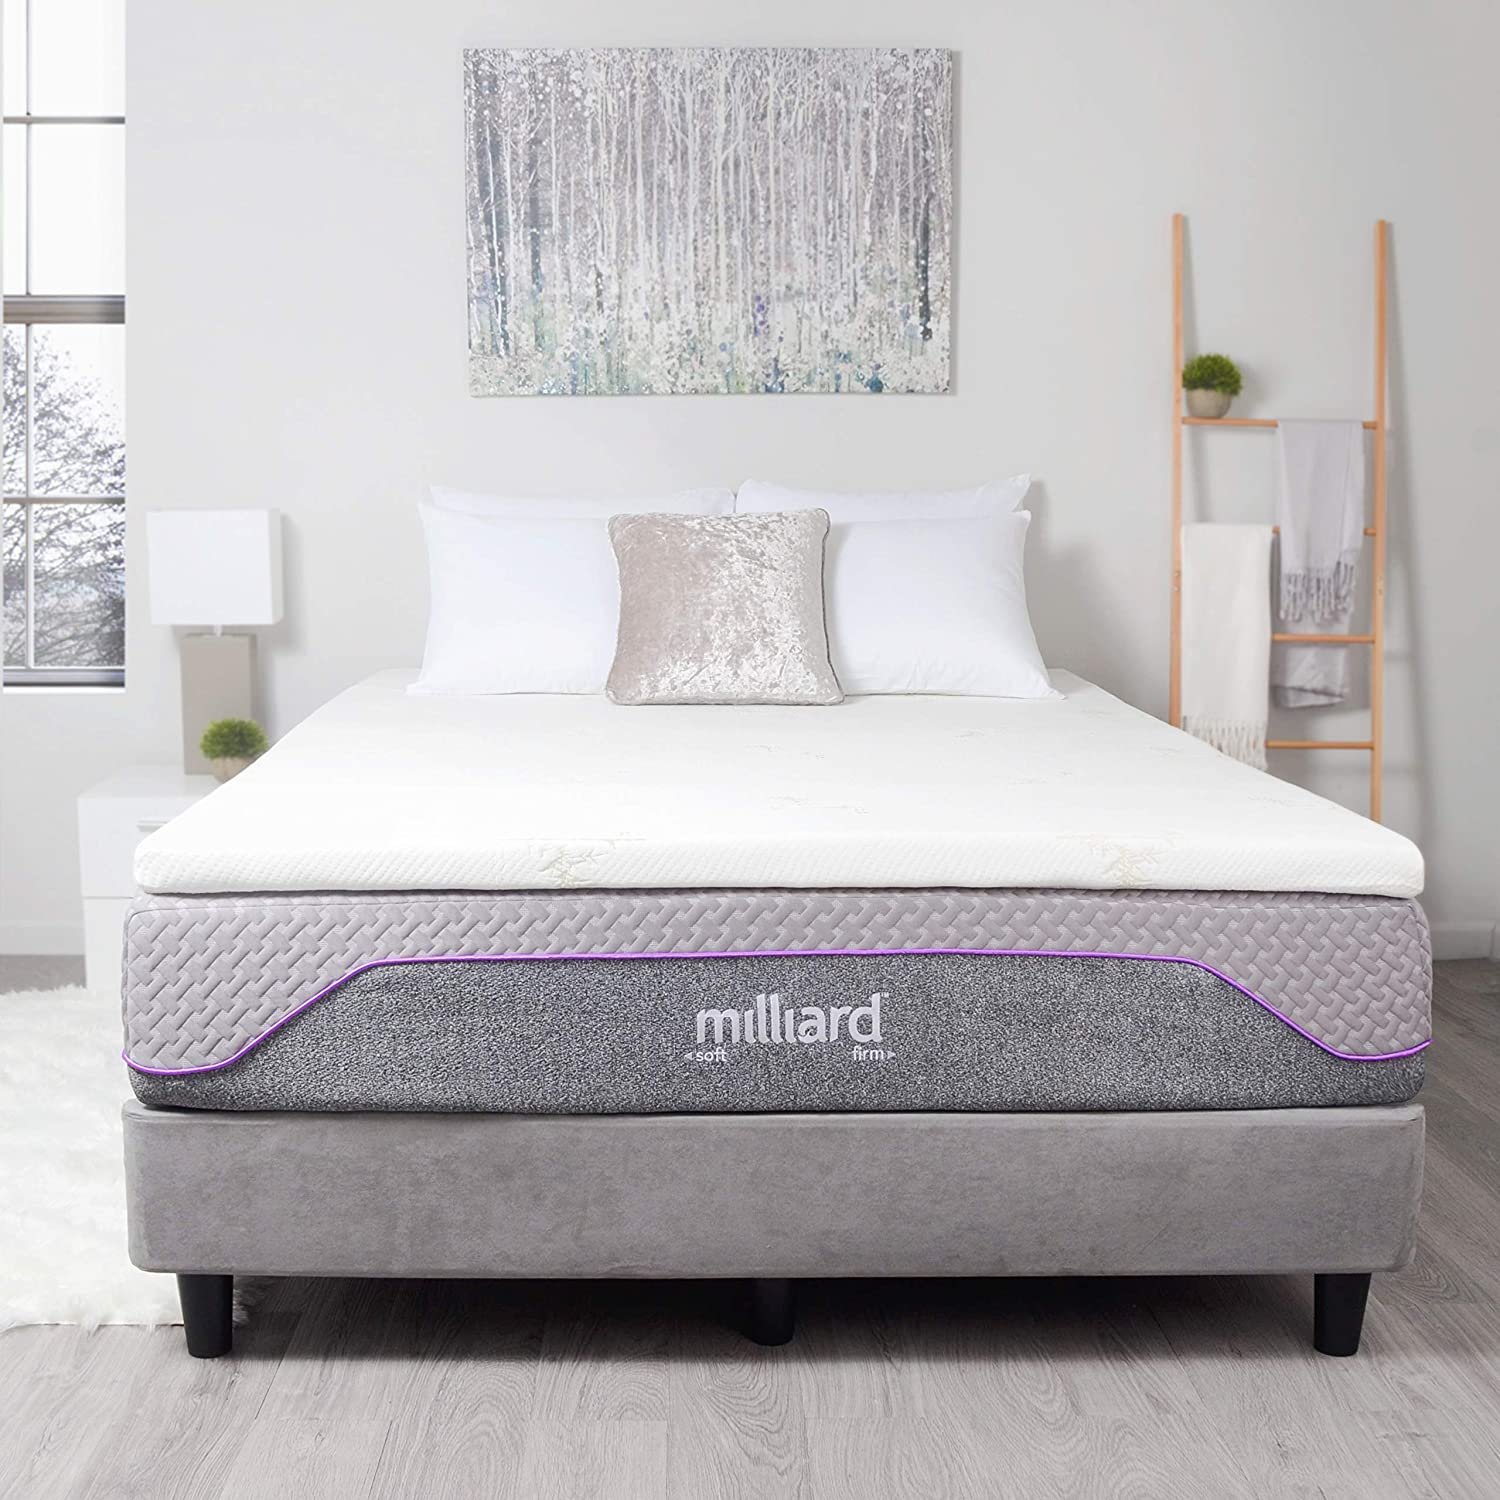 Top 5 Best Cooling Mattress Pads Reviews in 2020 5